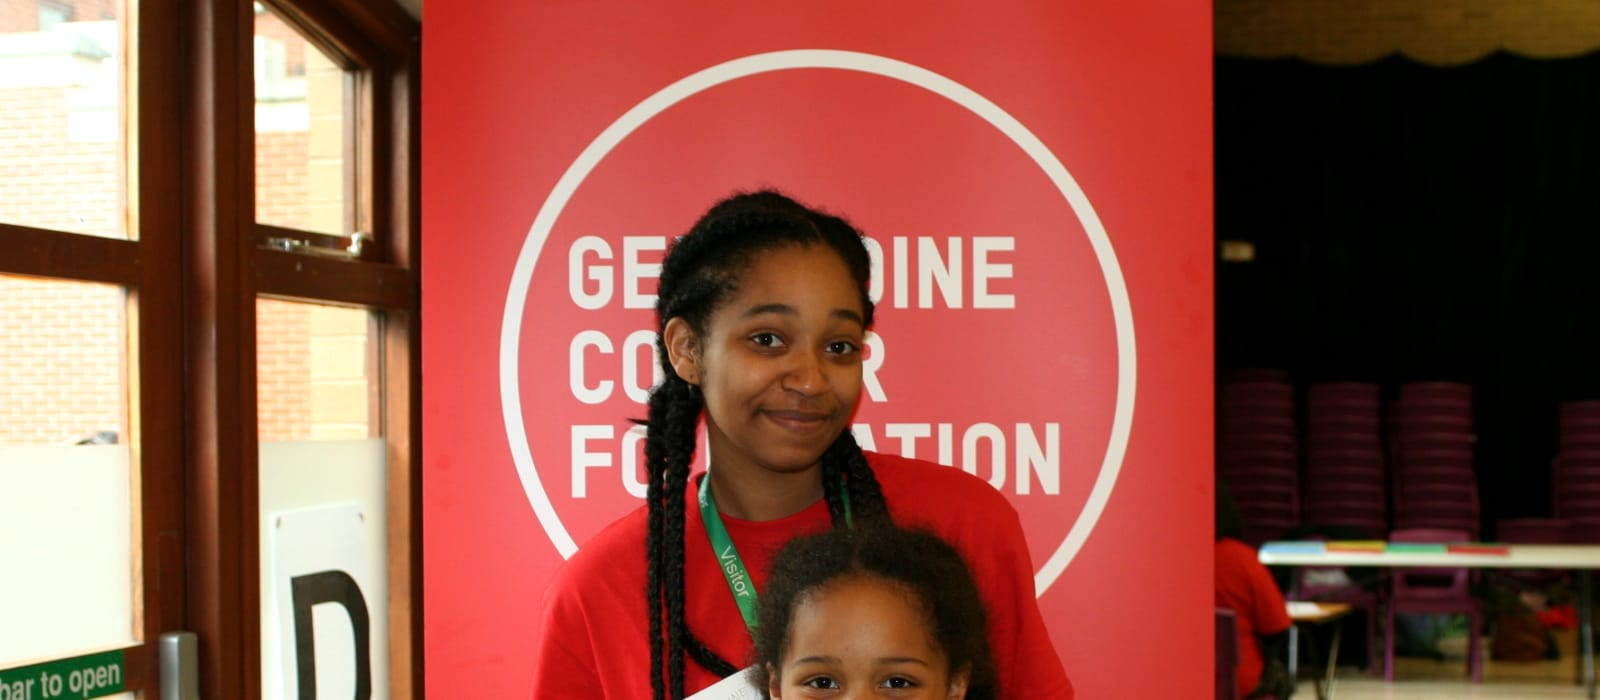 A young black girl stands with a young child in front of the GCF banner.